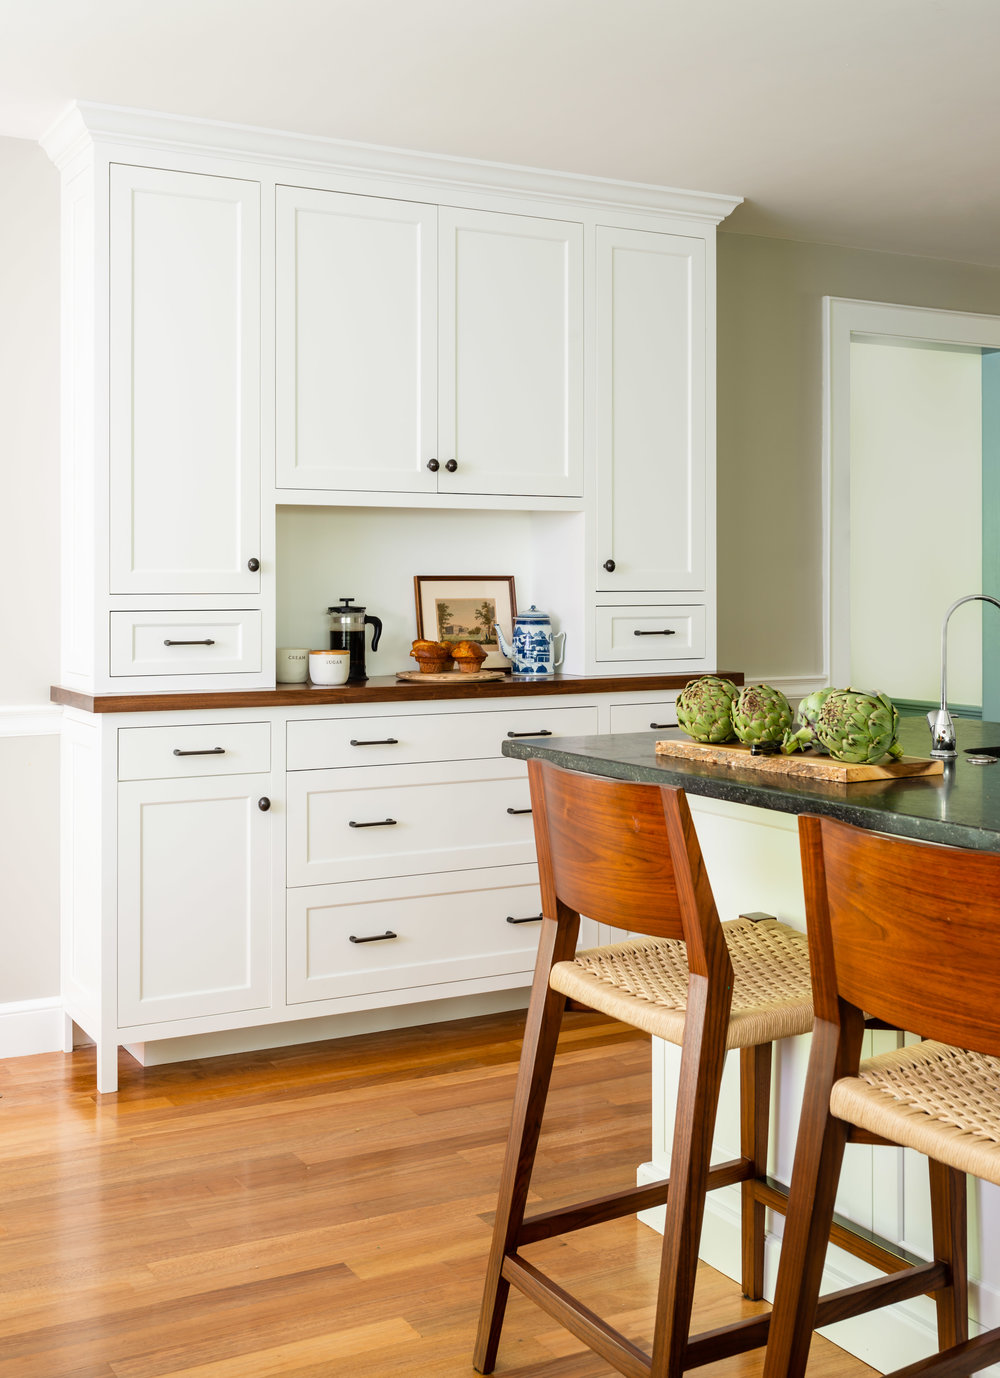 PinneyDesigns Chestnut Hill kitchen-4718edit-Edit.jpg